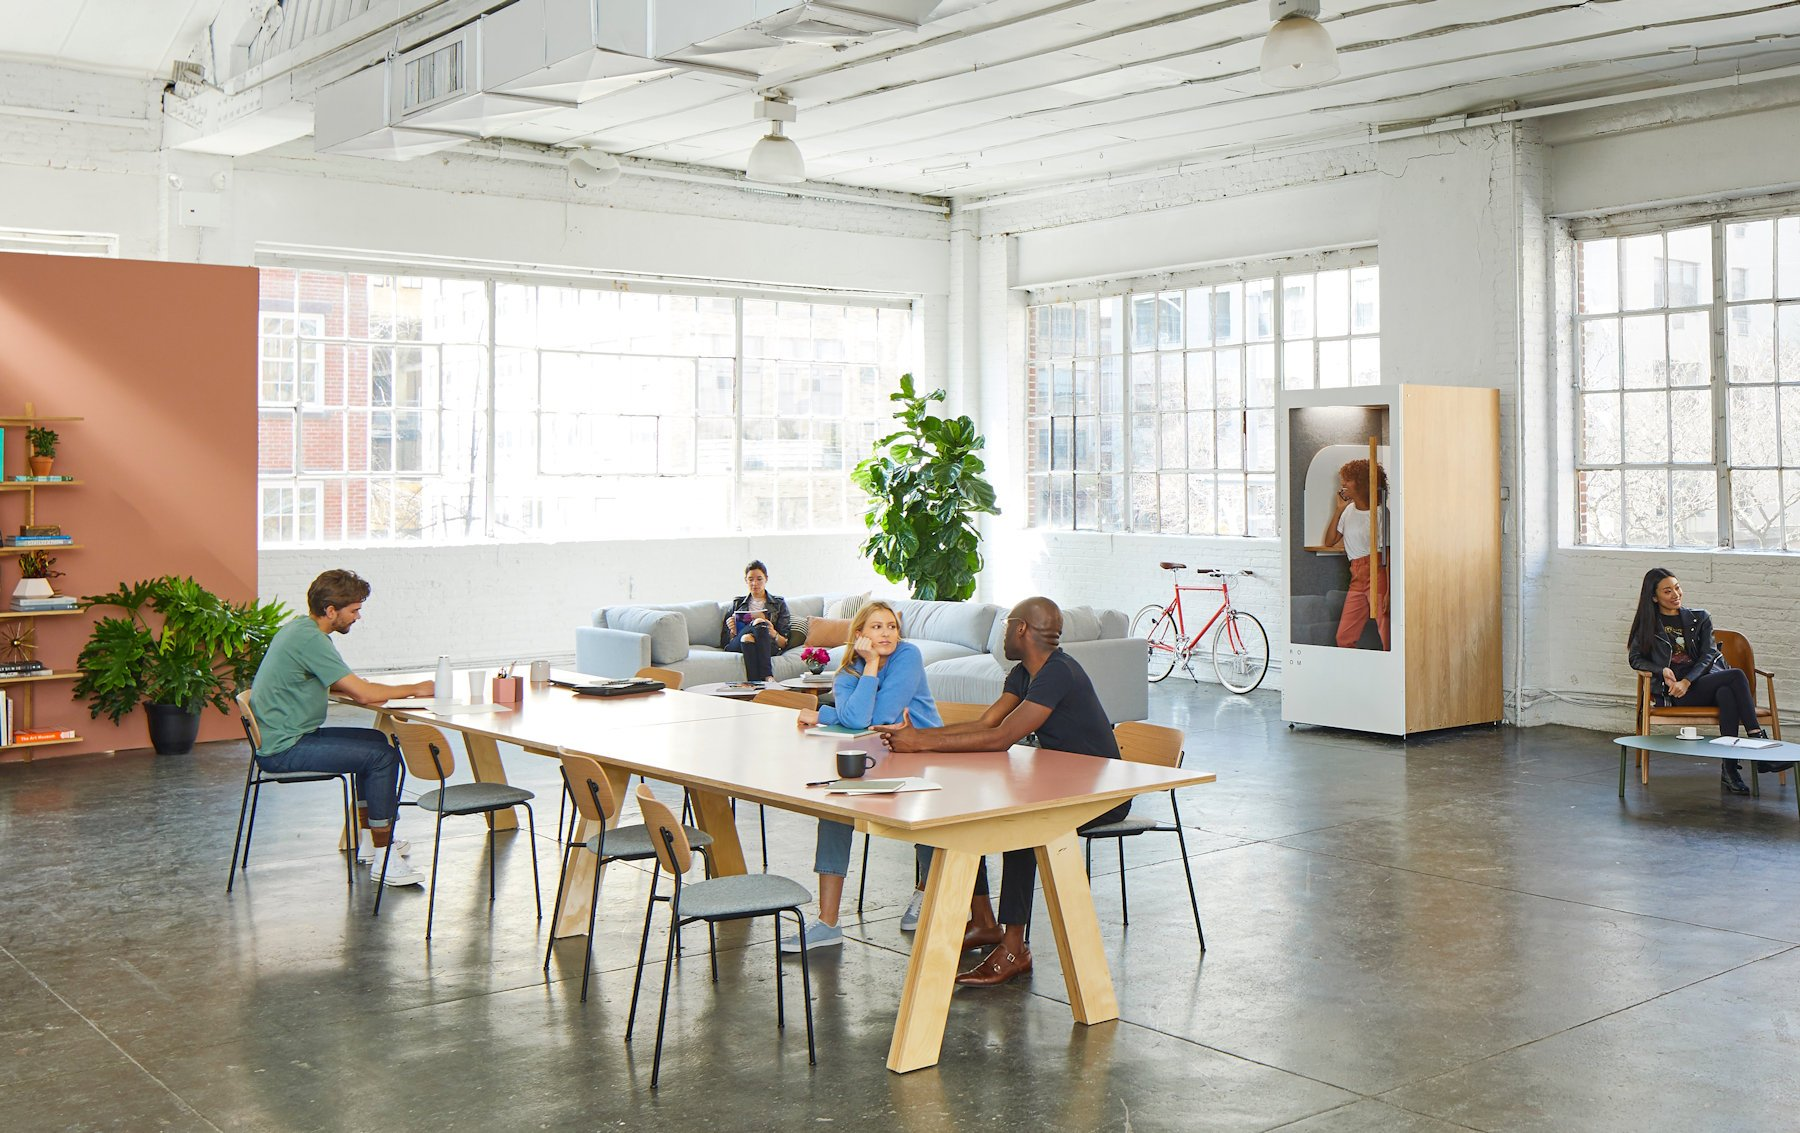 5 Ways Startups Can Help Employees from All Backgrounds Feel Welcome